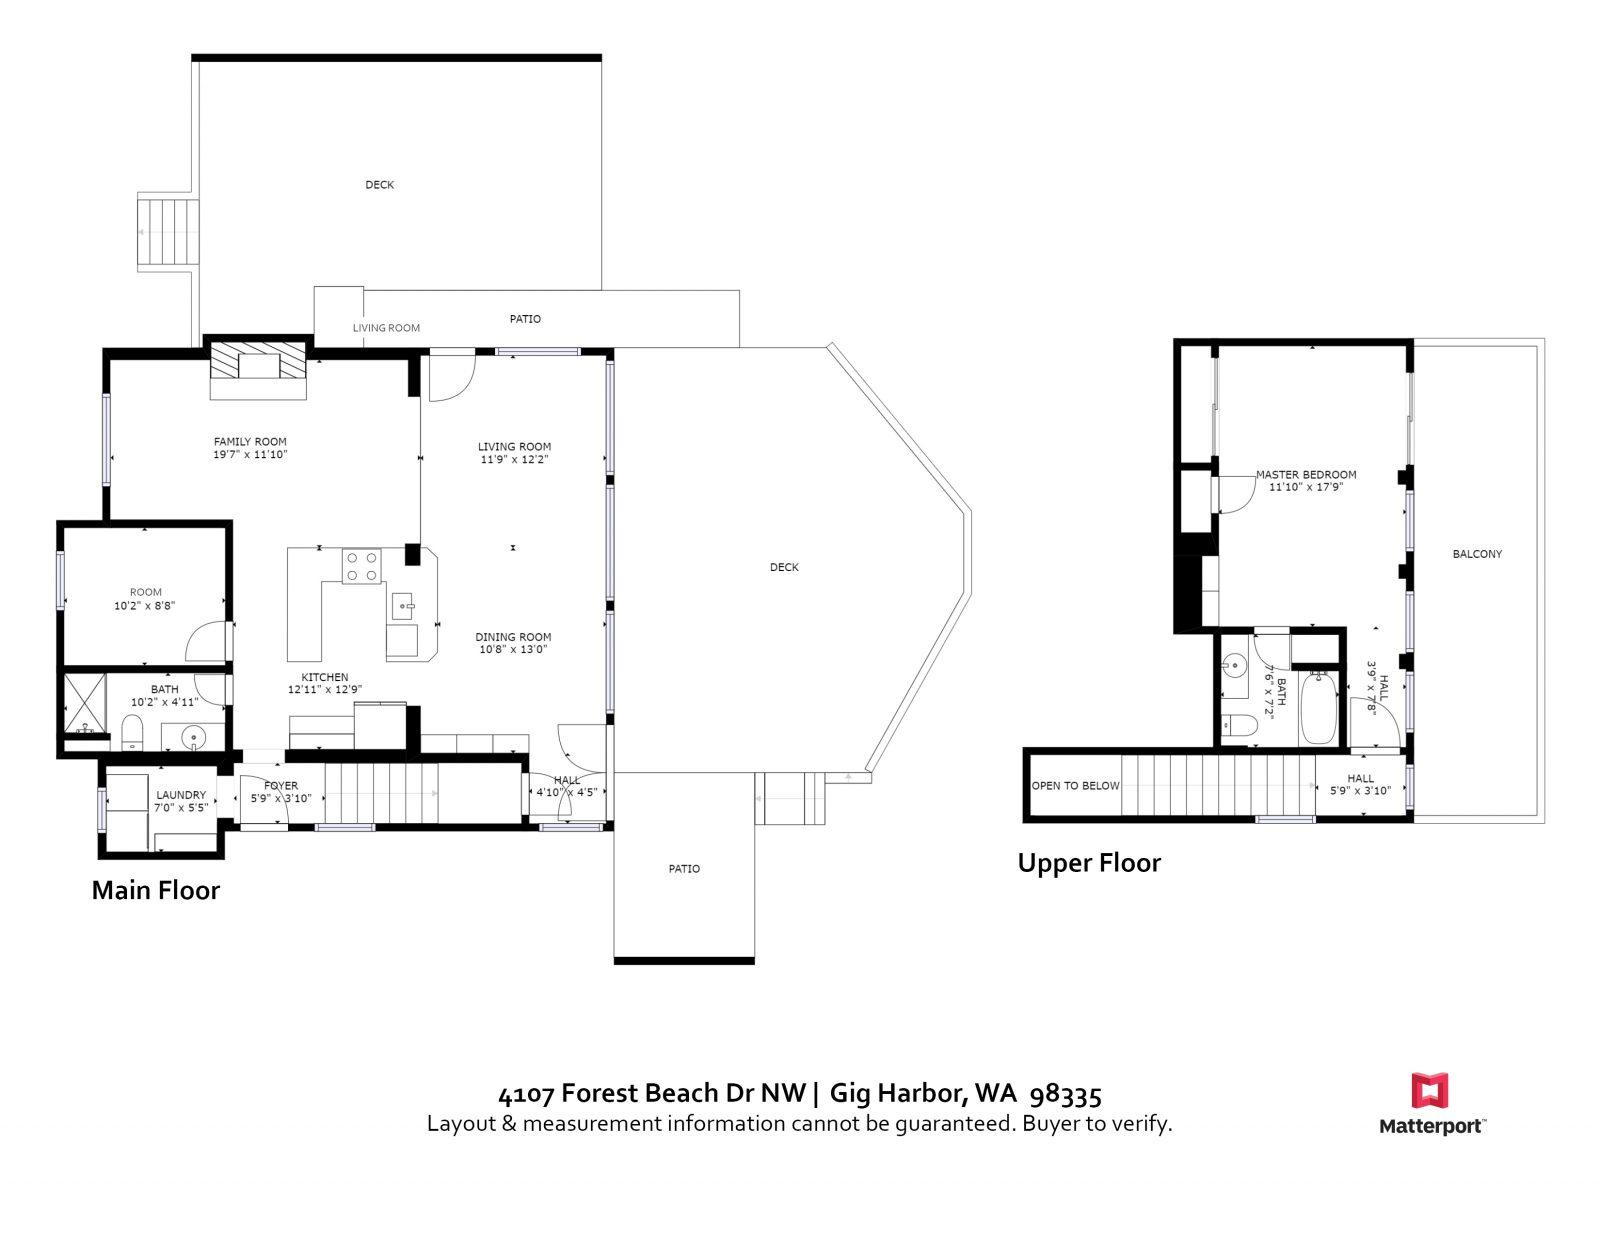 FLOOR PLAN | 4107 Forest Beach Dr NW, Gig Harbor WA